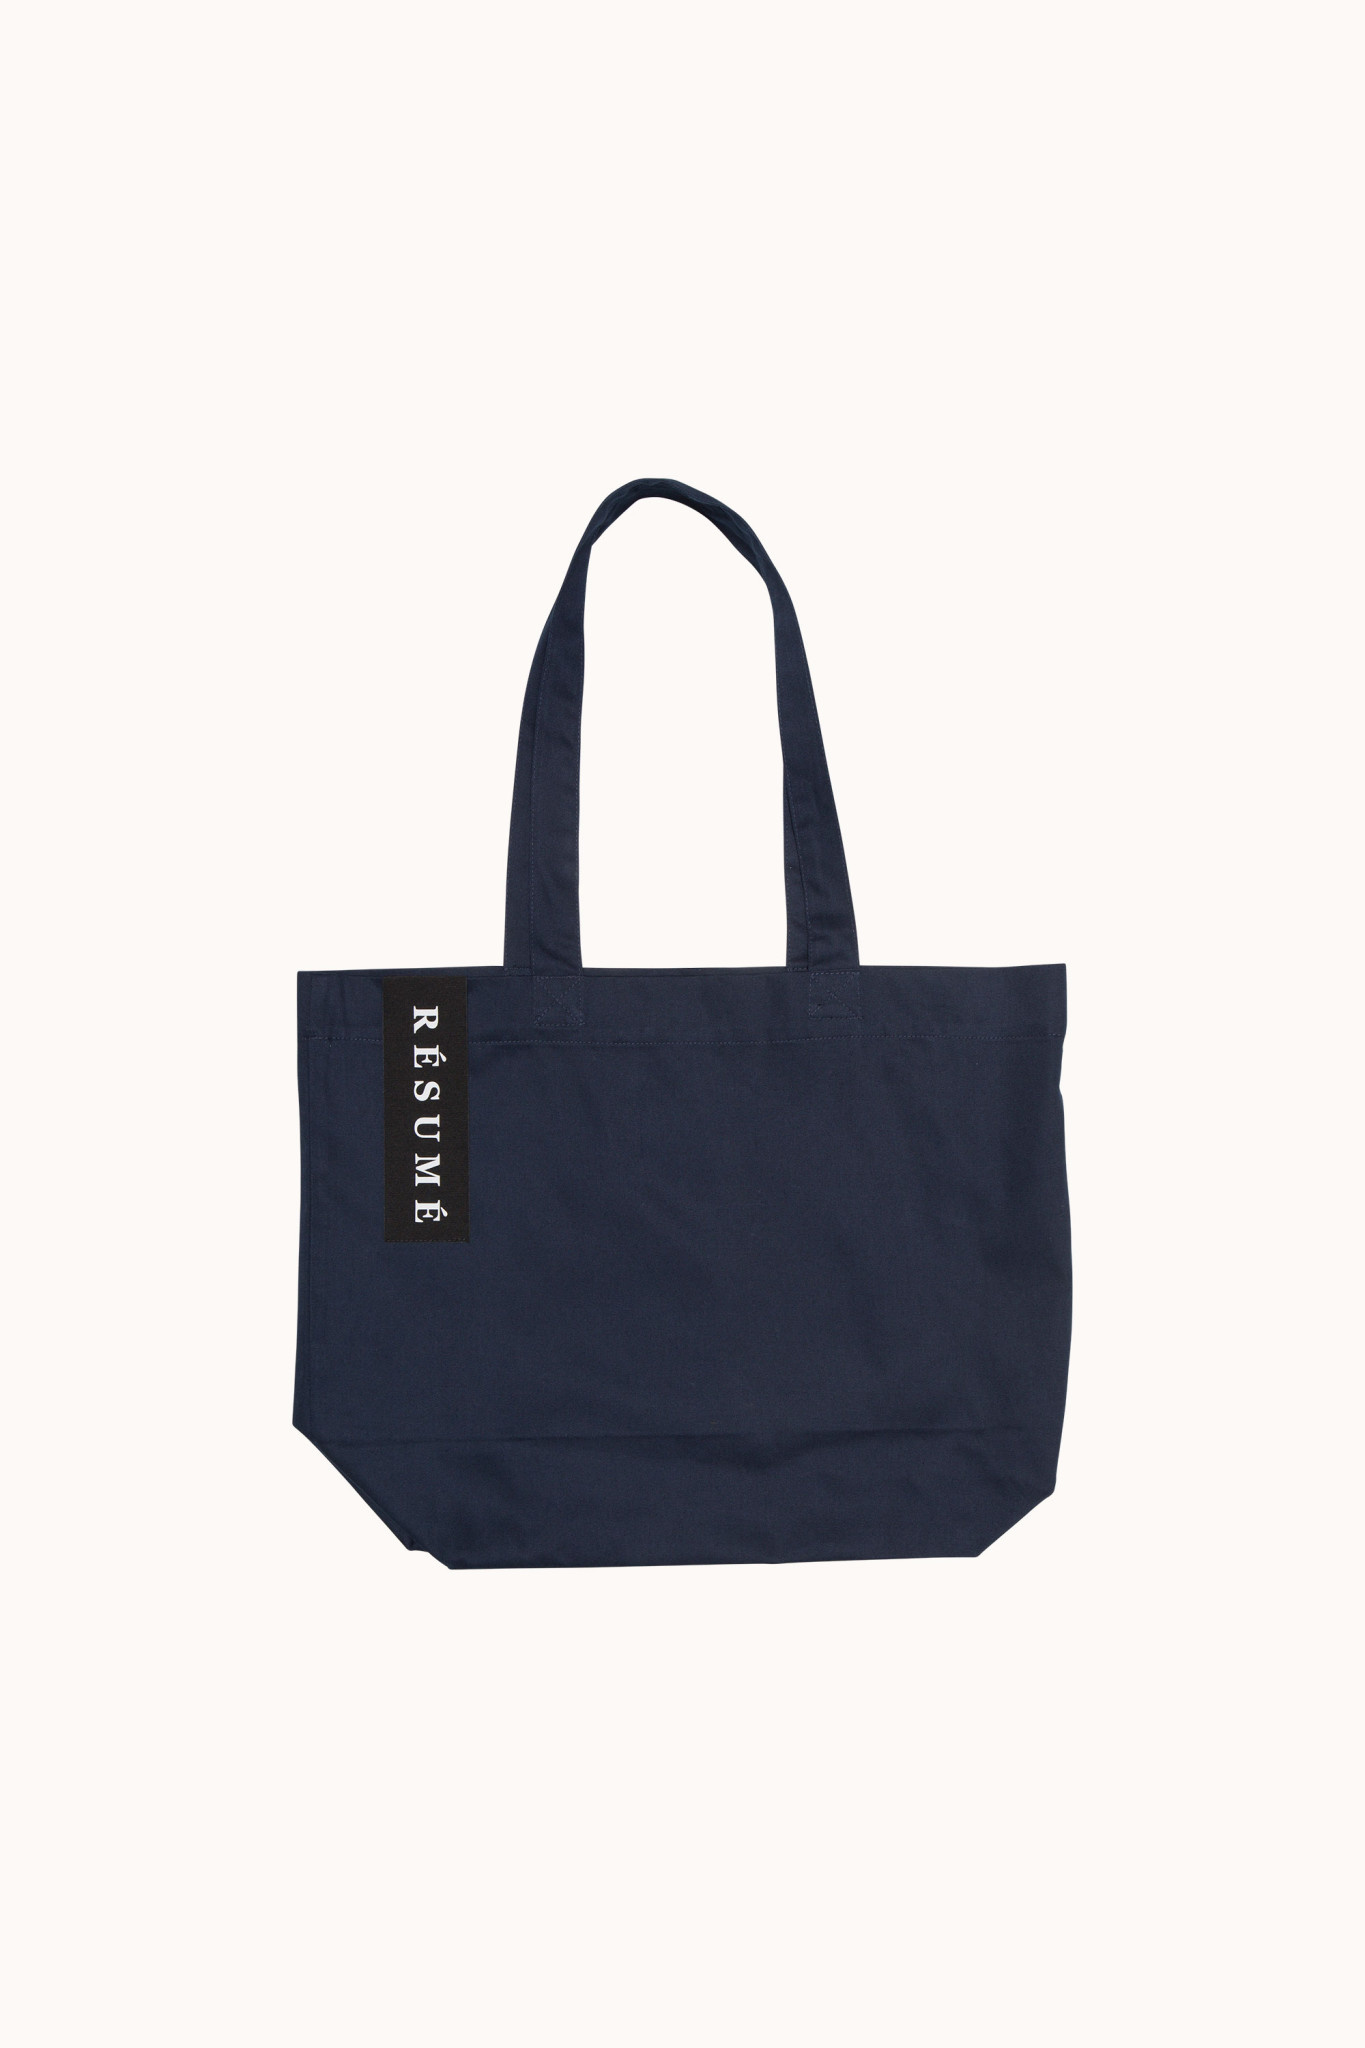 Utana Cotton Tote Bag Navy-1